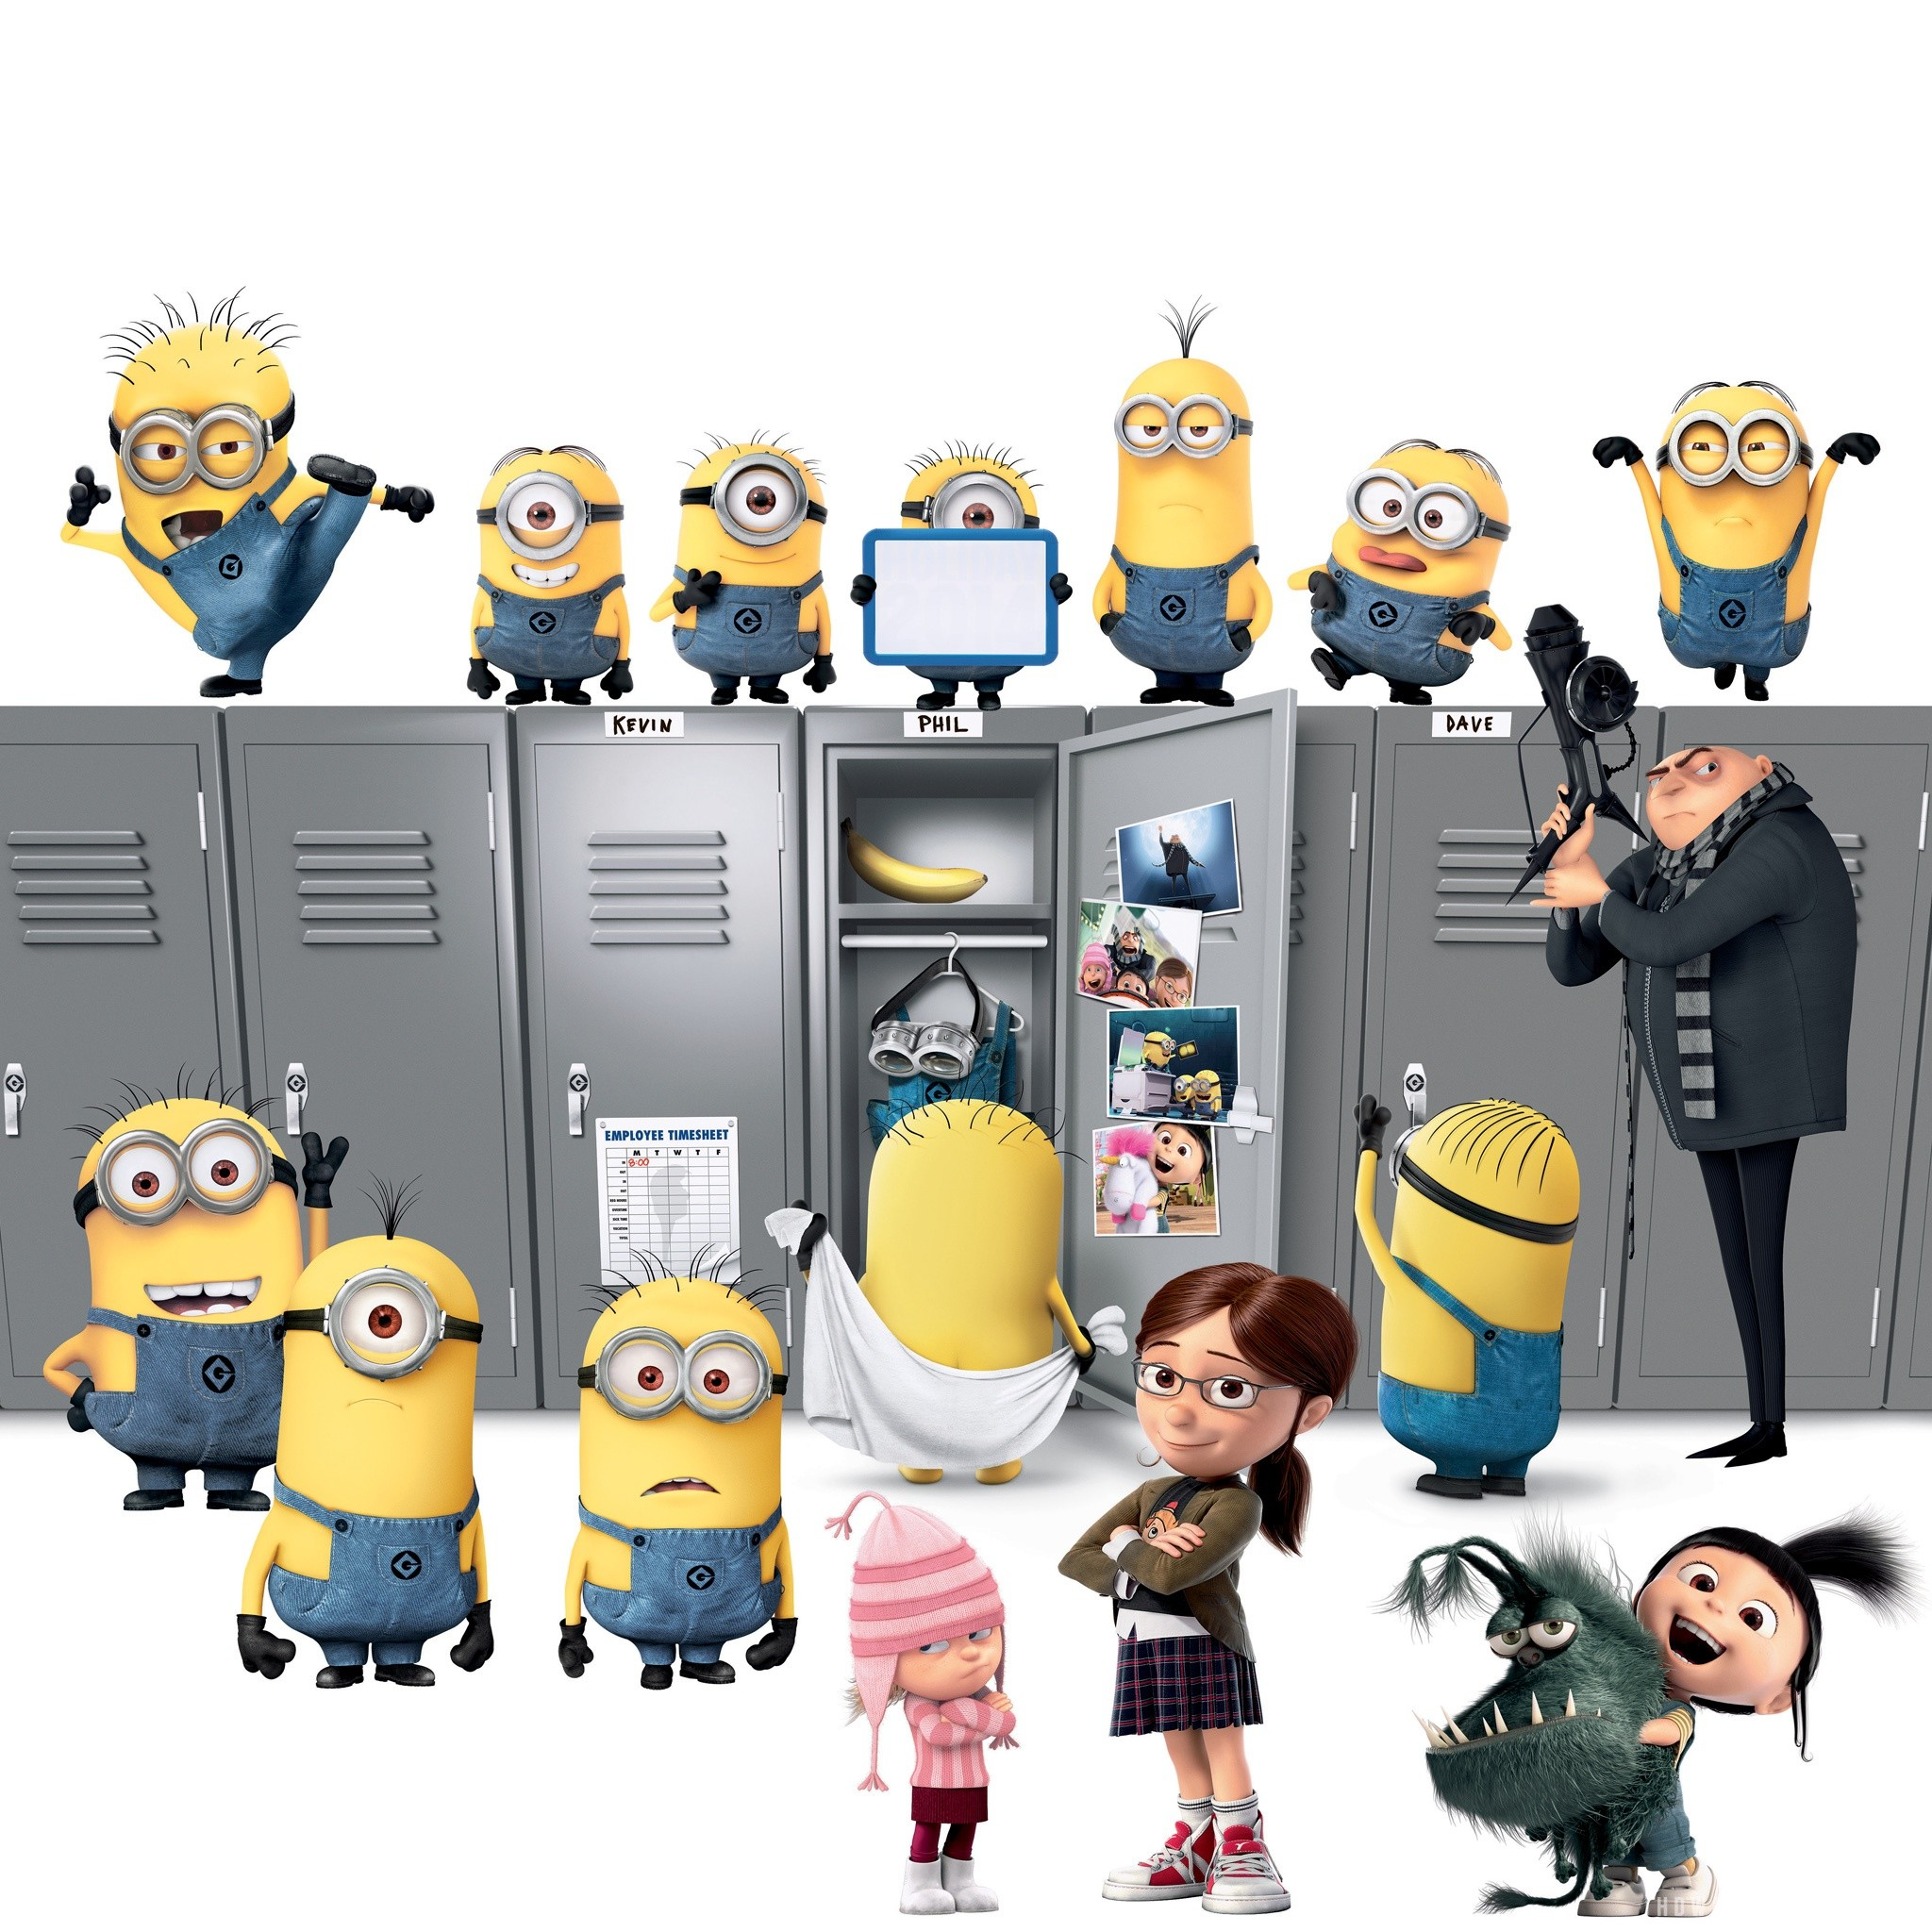 1920x1080 Despicable Me Agnes It's So Fluffy